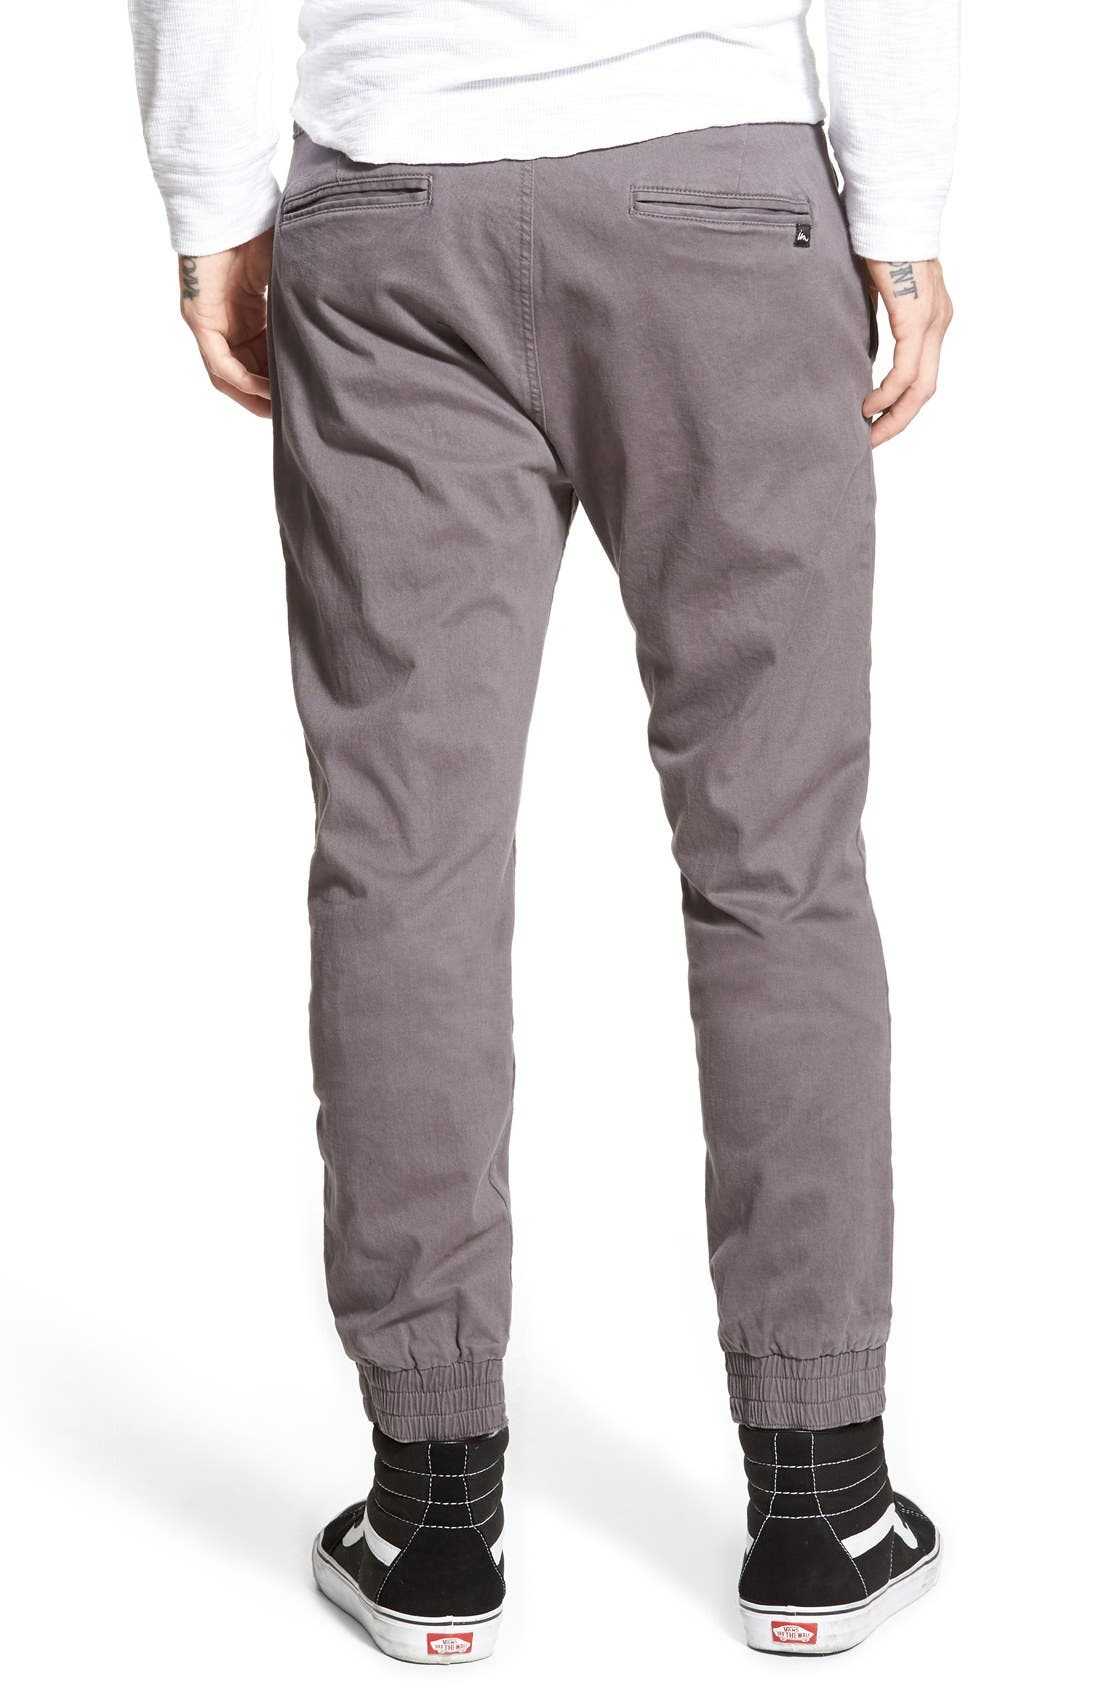 'Denny' Woven Jogger Pants,                             Alternate thumbnail 2, color,                             Charcoal